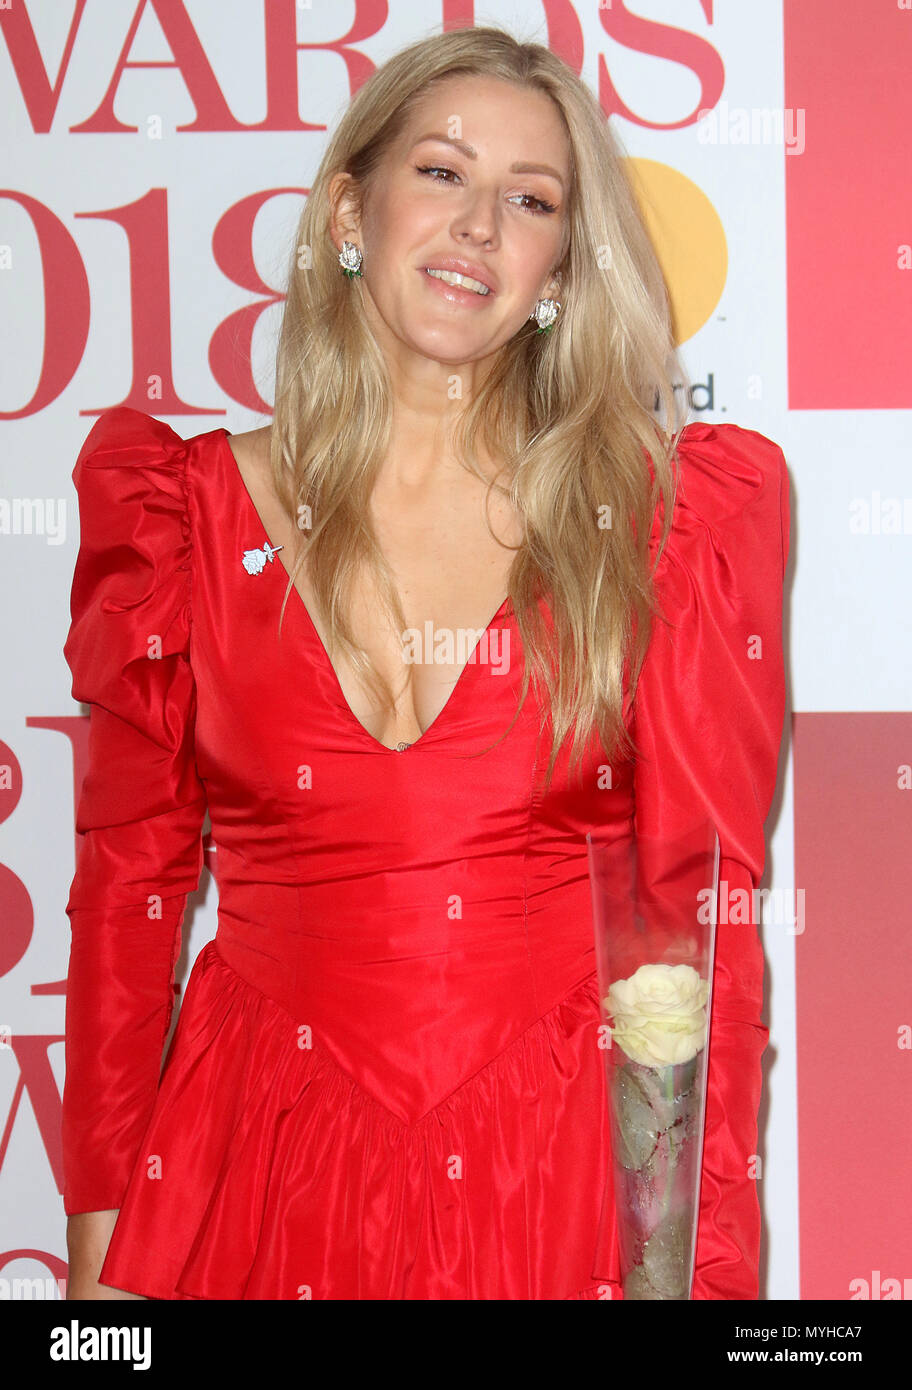 Dec 21, 2018 - Ellie Goulding an der BRITS Awards 2018 in der O2 Arena in London, England, Großbritannien Stockbild